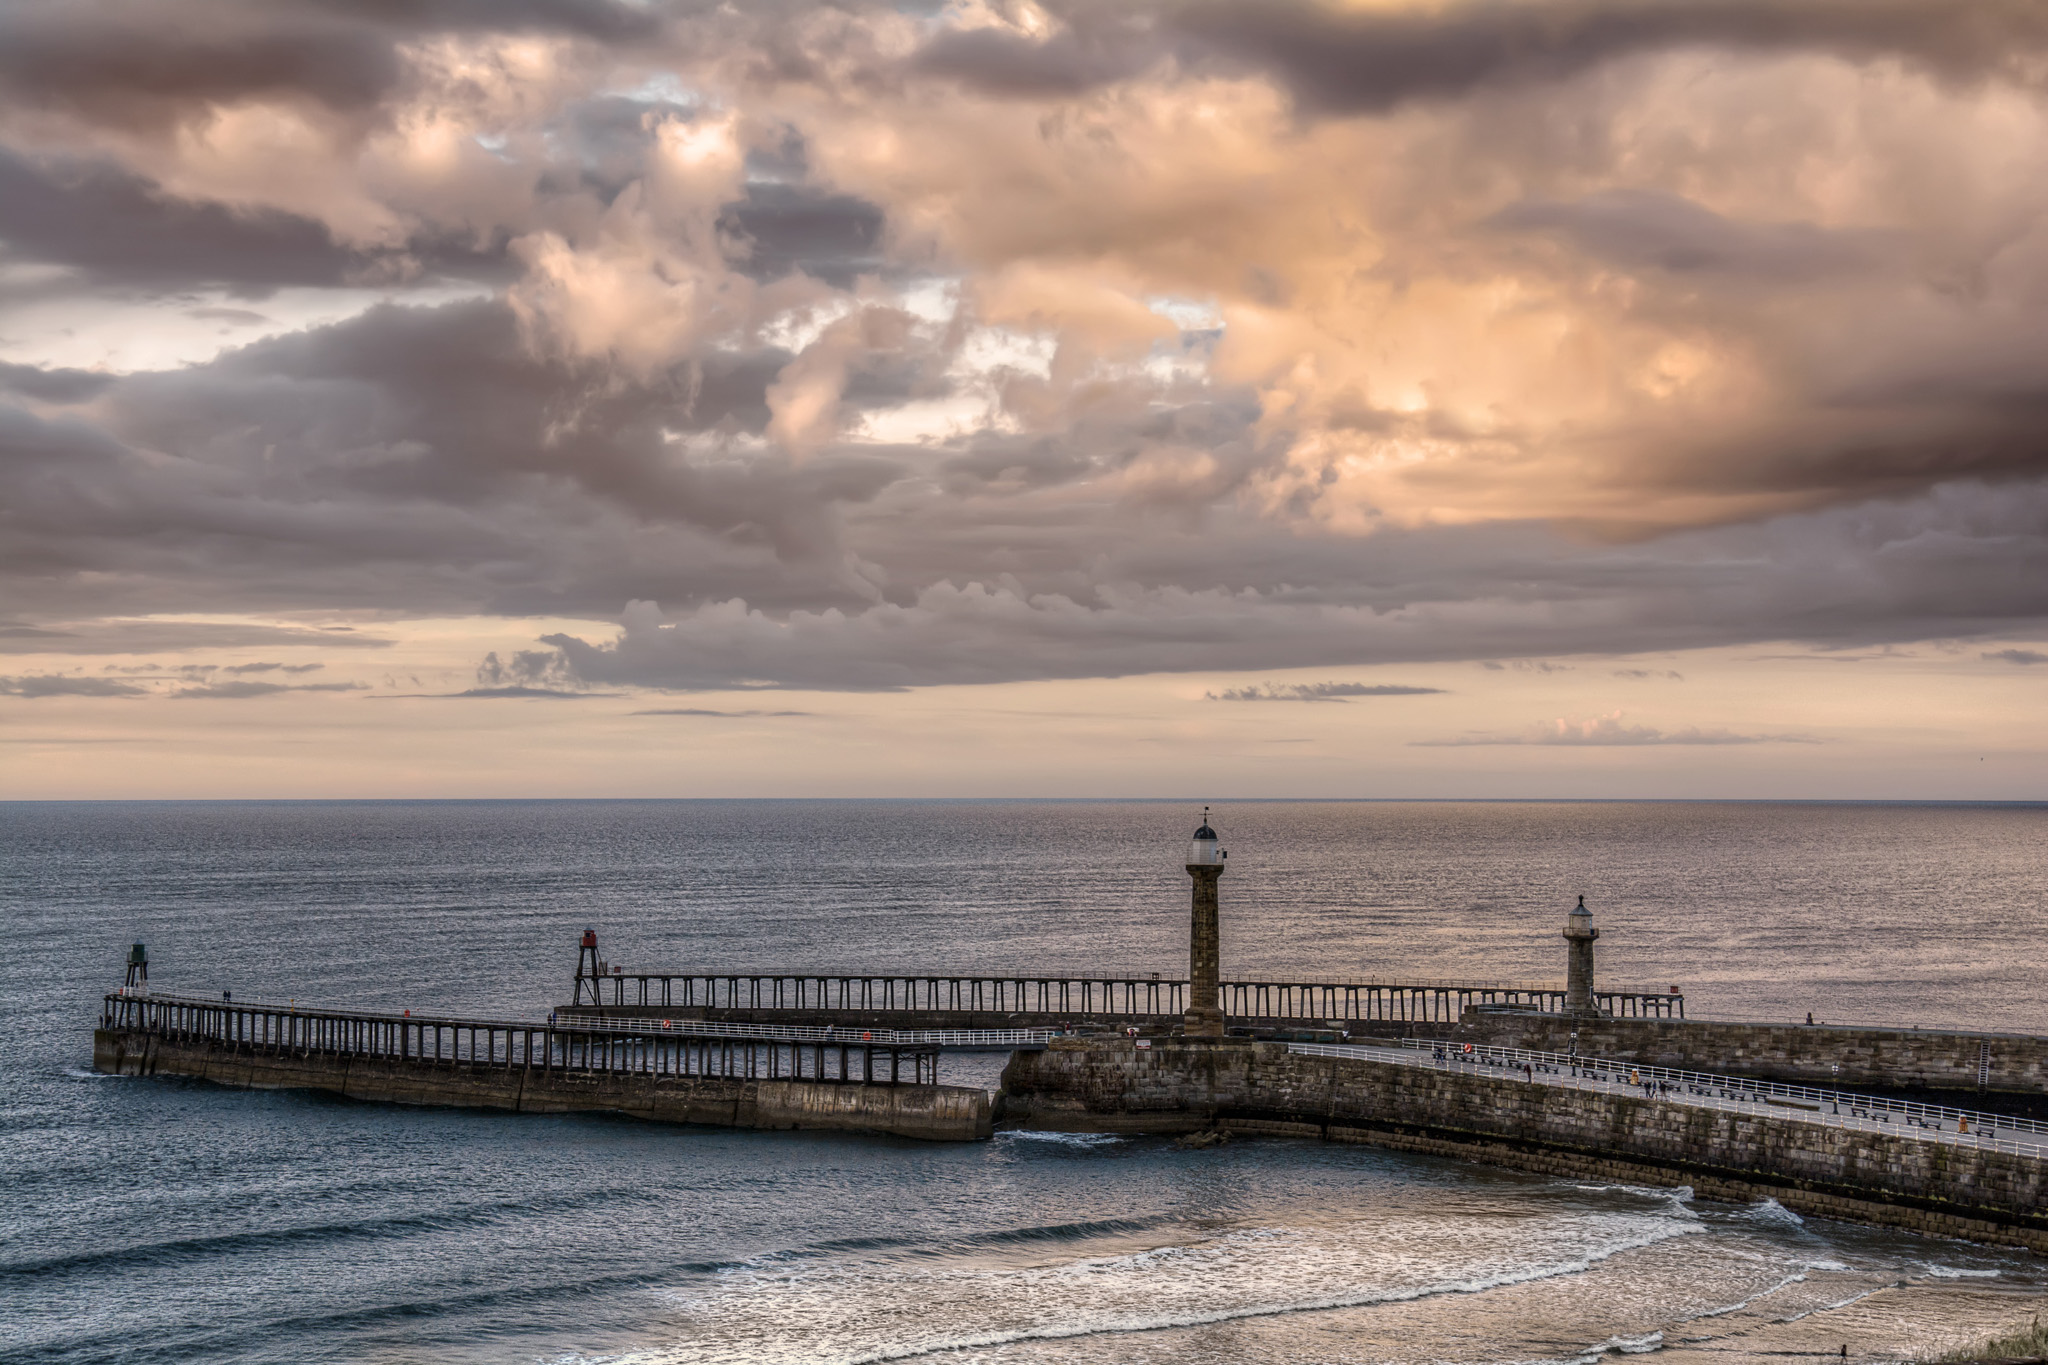 Evening over Whitby